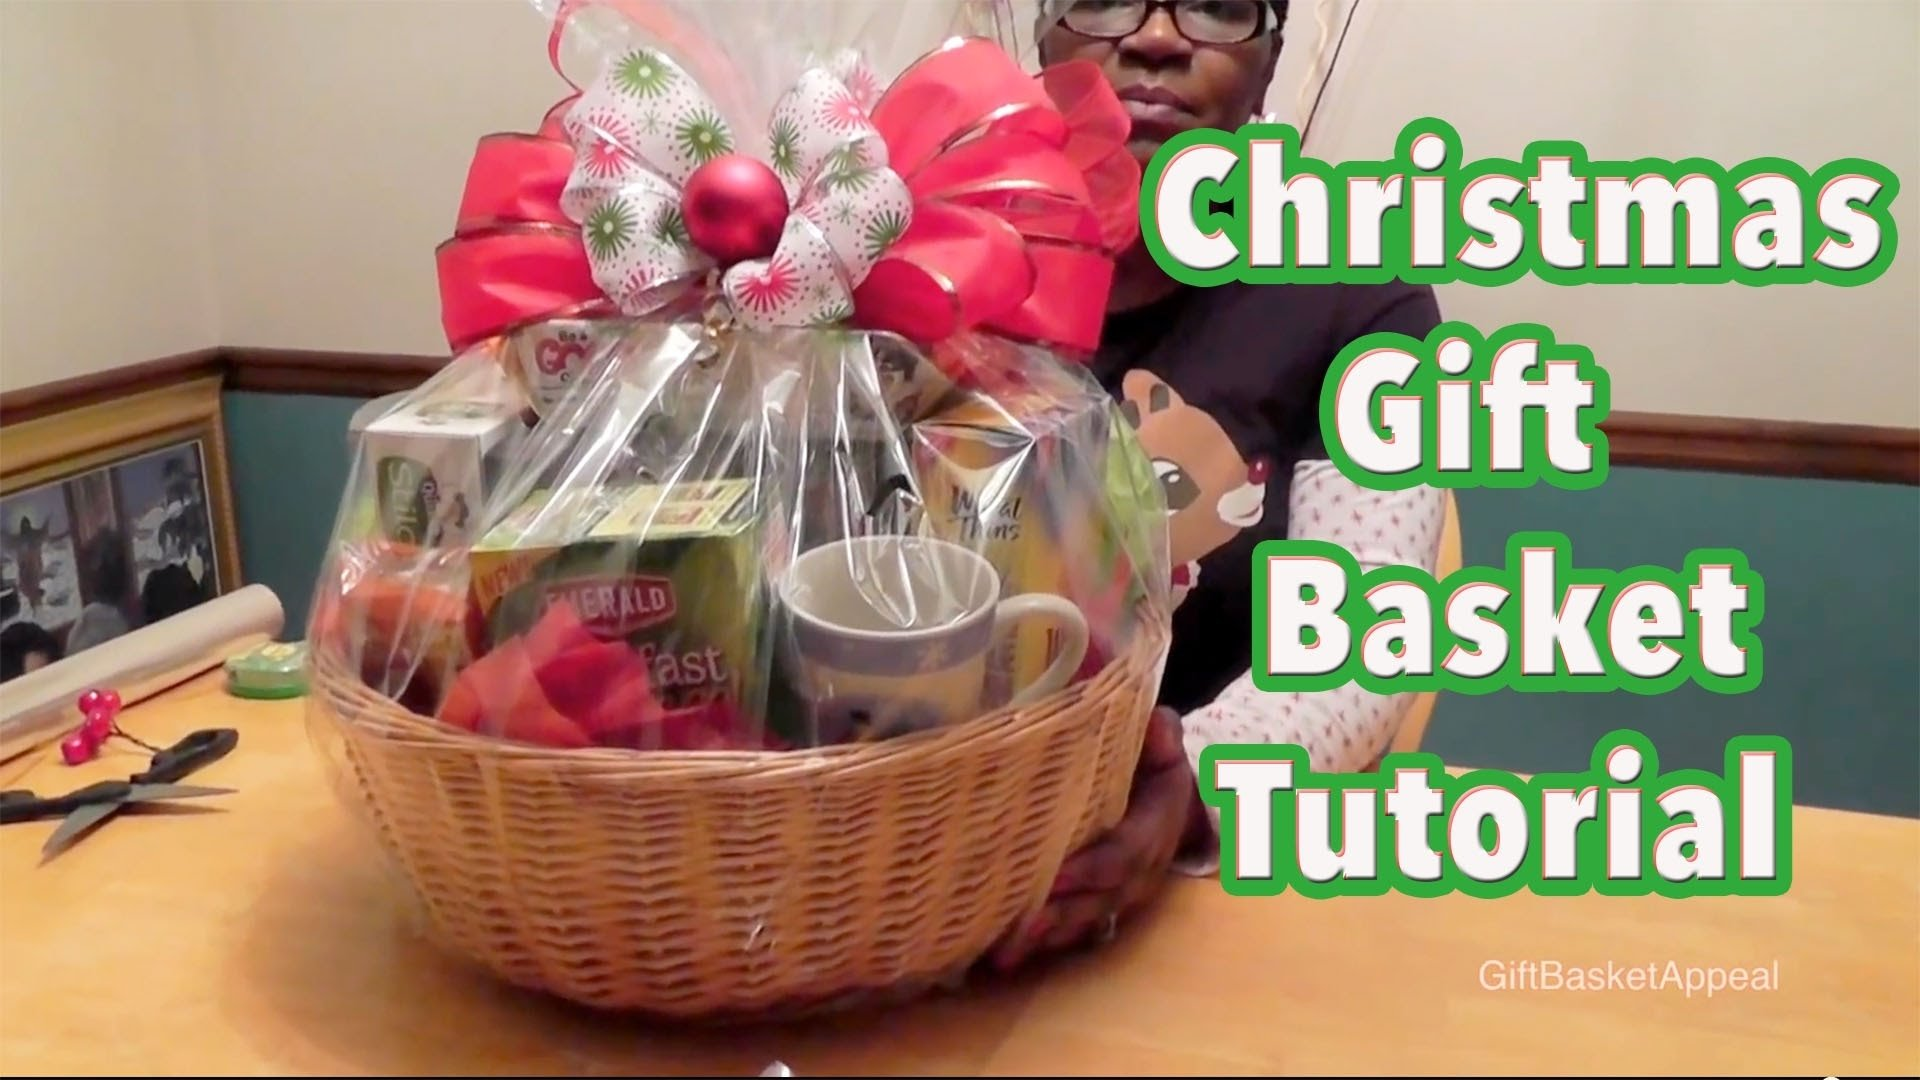 10 Cute Homemade Gift Basket Ideas For Christmas diy gift basket tutorial christmas gift basket giftbasketappeal 6 2020